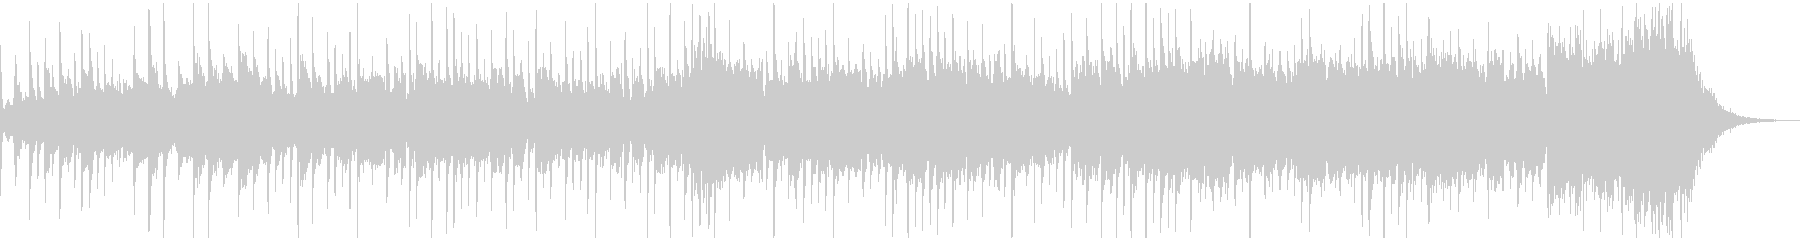 Positive and info...'s unreproduced waveform